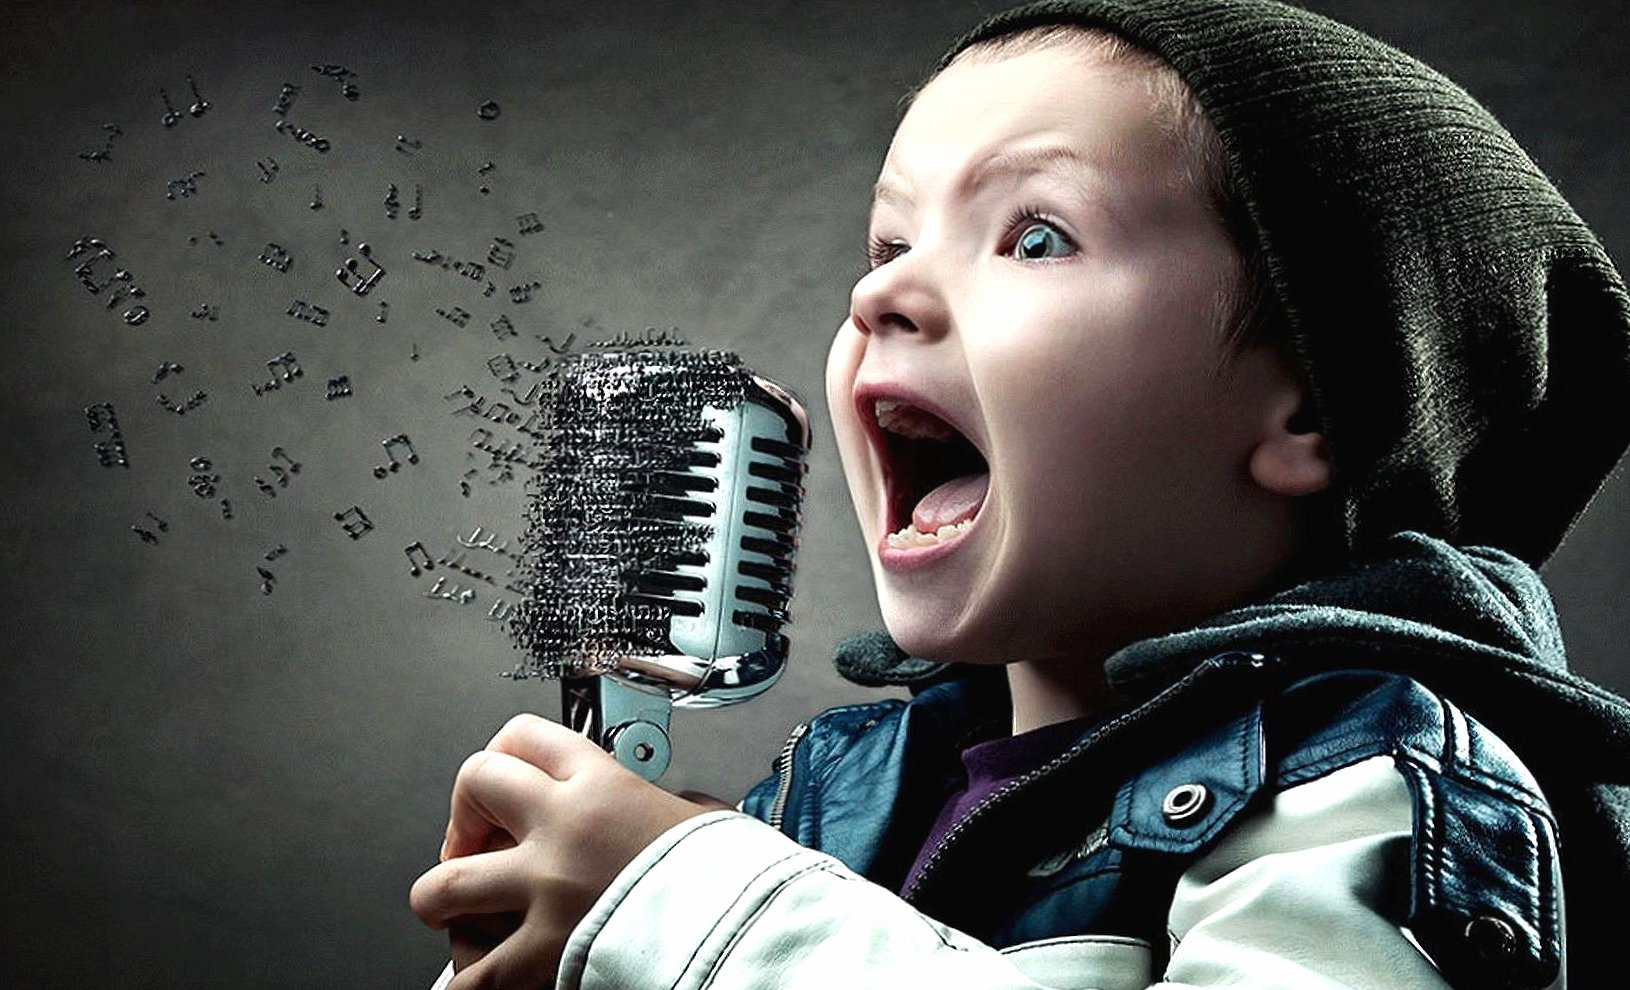 Child singer notes music digital art wallpapers HD quality